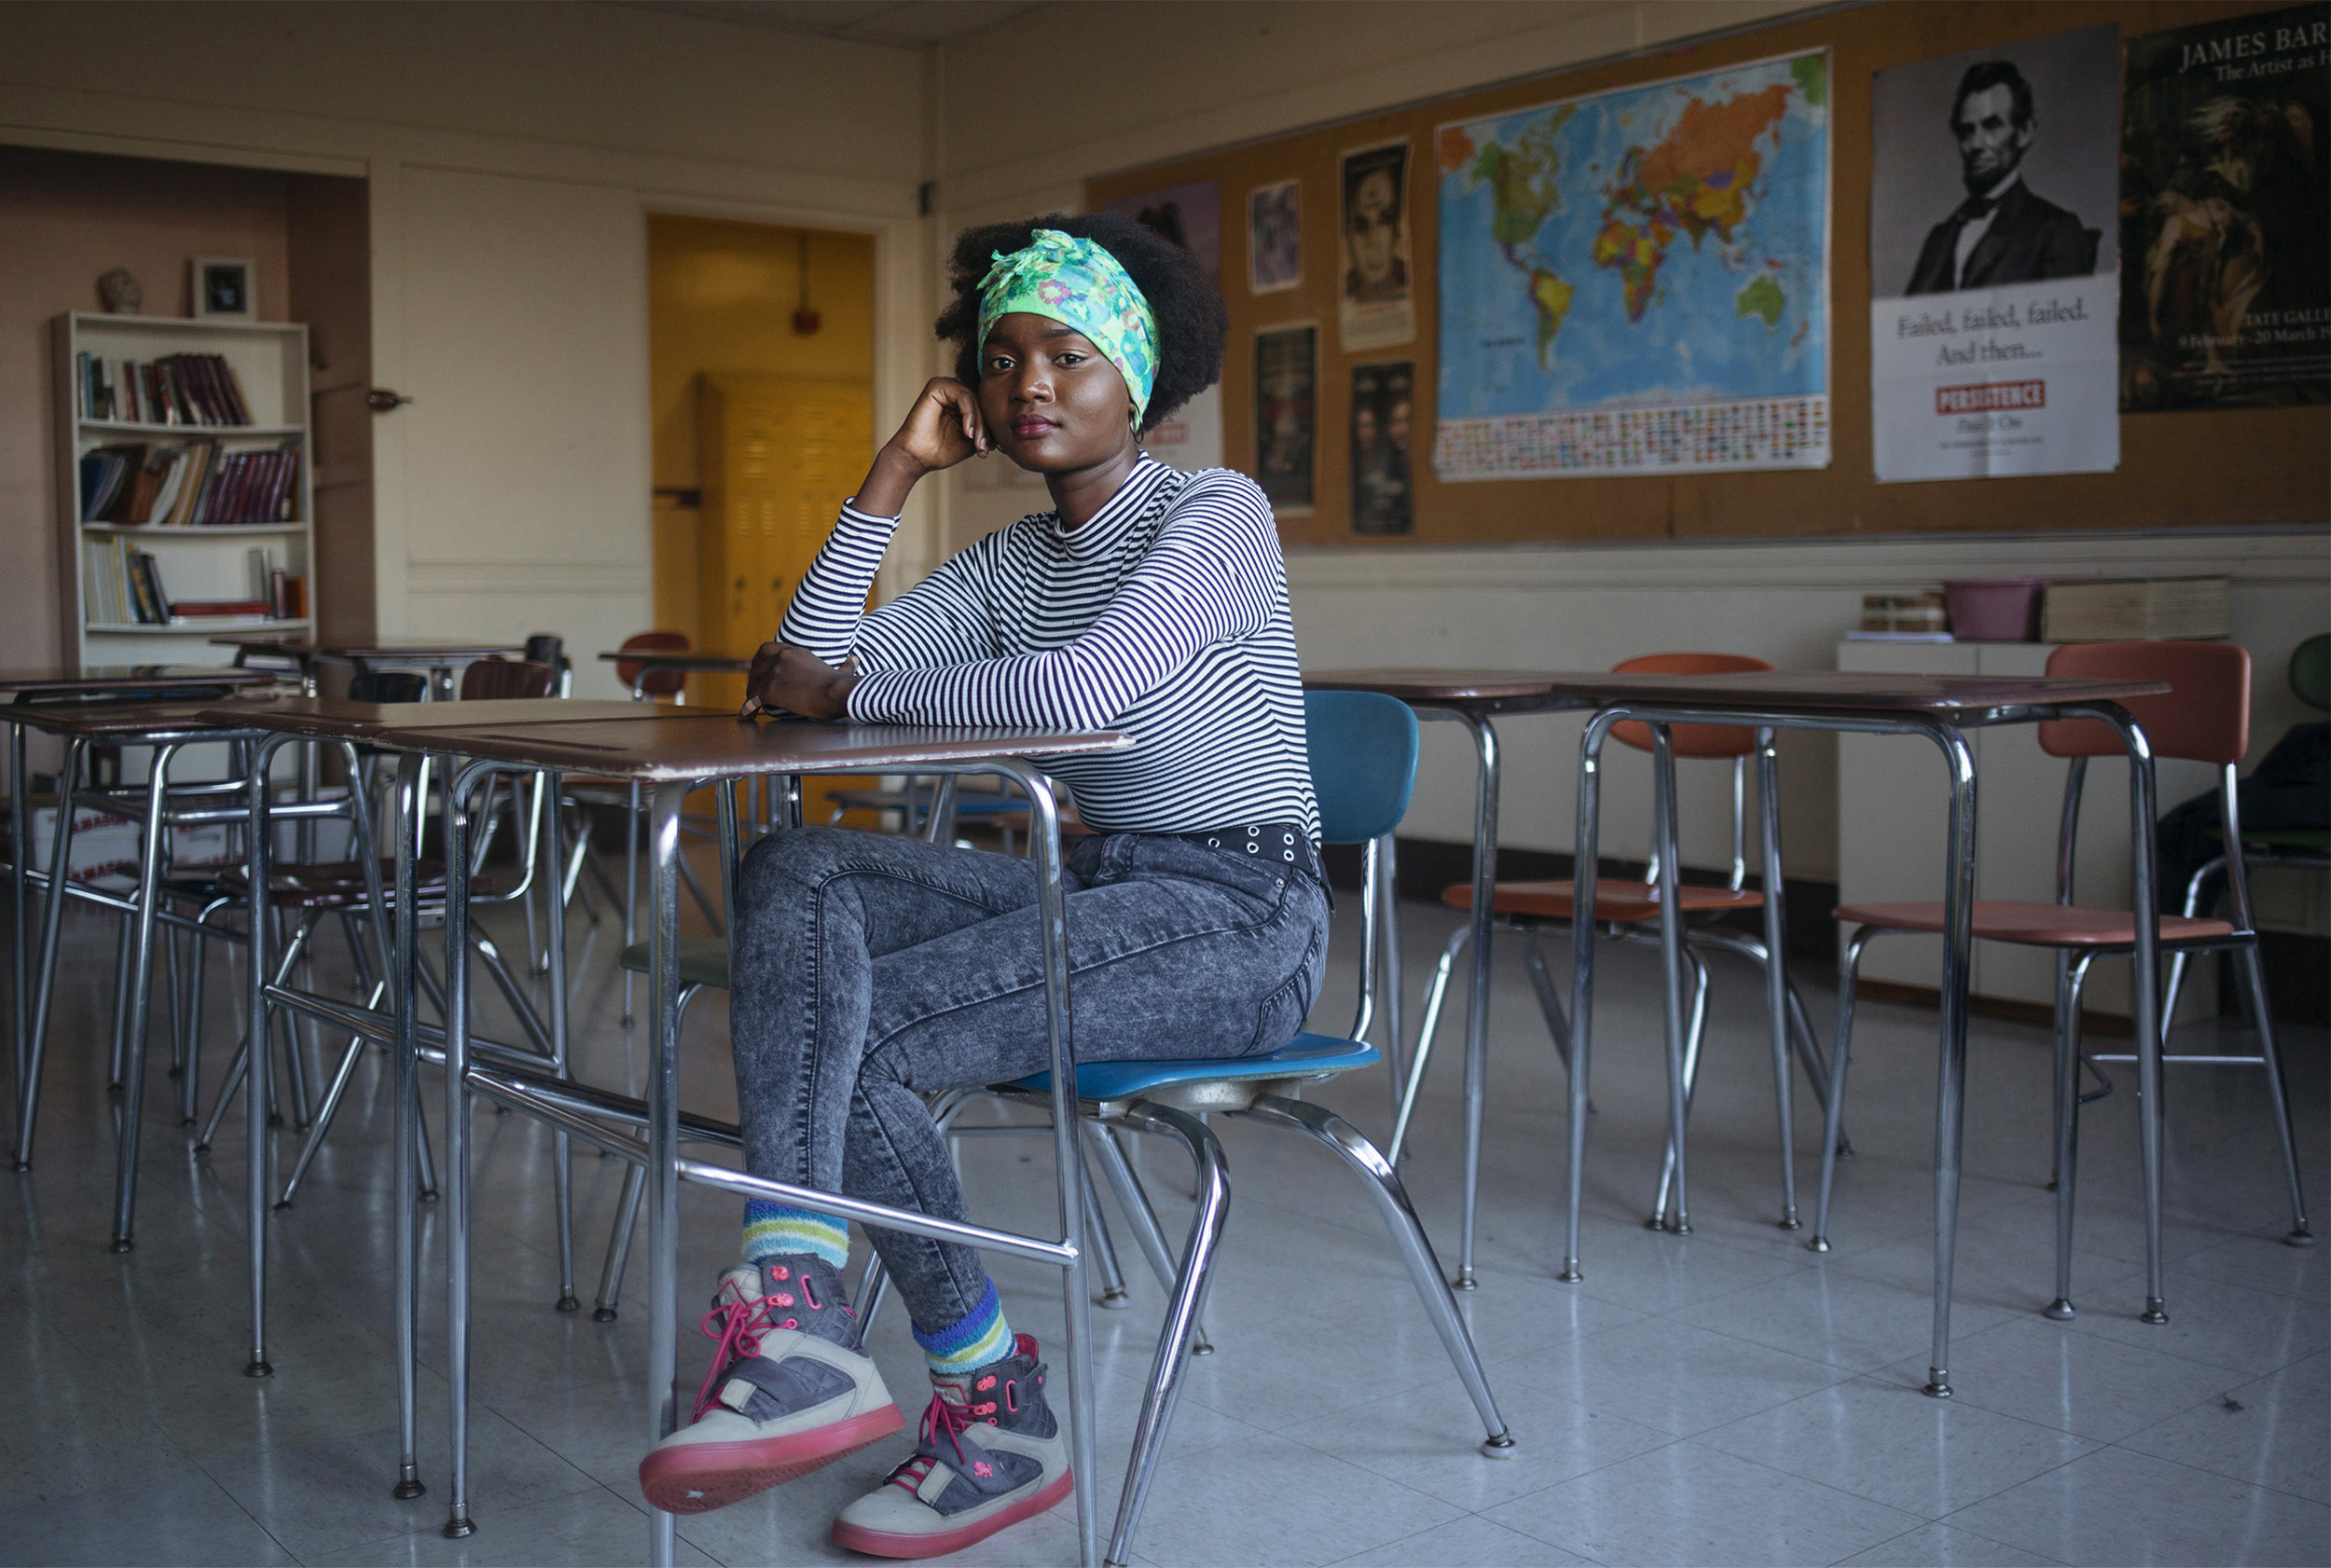 Brenda Viola in a classroom at Deering High School in Portland, Maine where she is senior. The 17-year-old Viola came to the U.S. at from a refugee camp in Kenya when she was 12 and now volunteers to help new immigrant students acclimate.